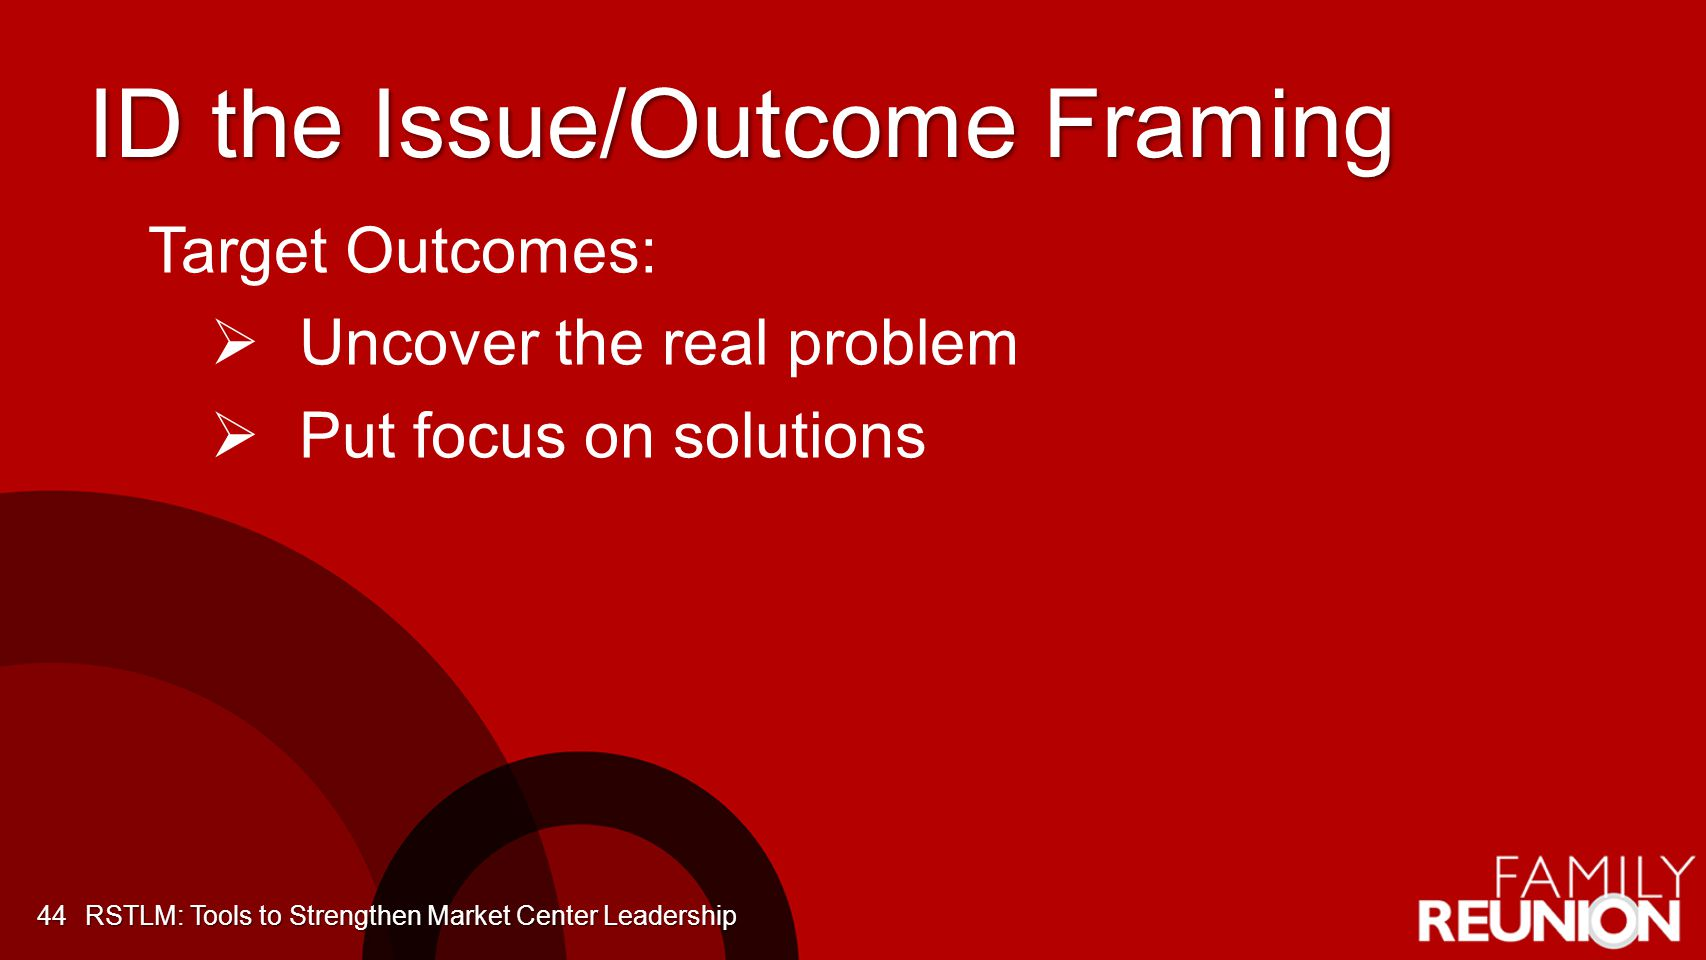 ID the Issue/Outcome Framing